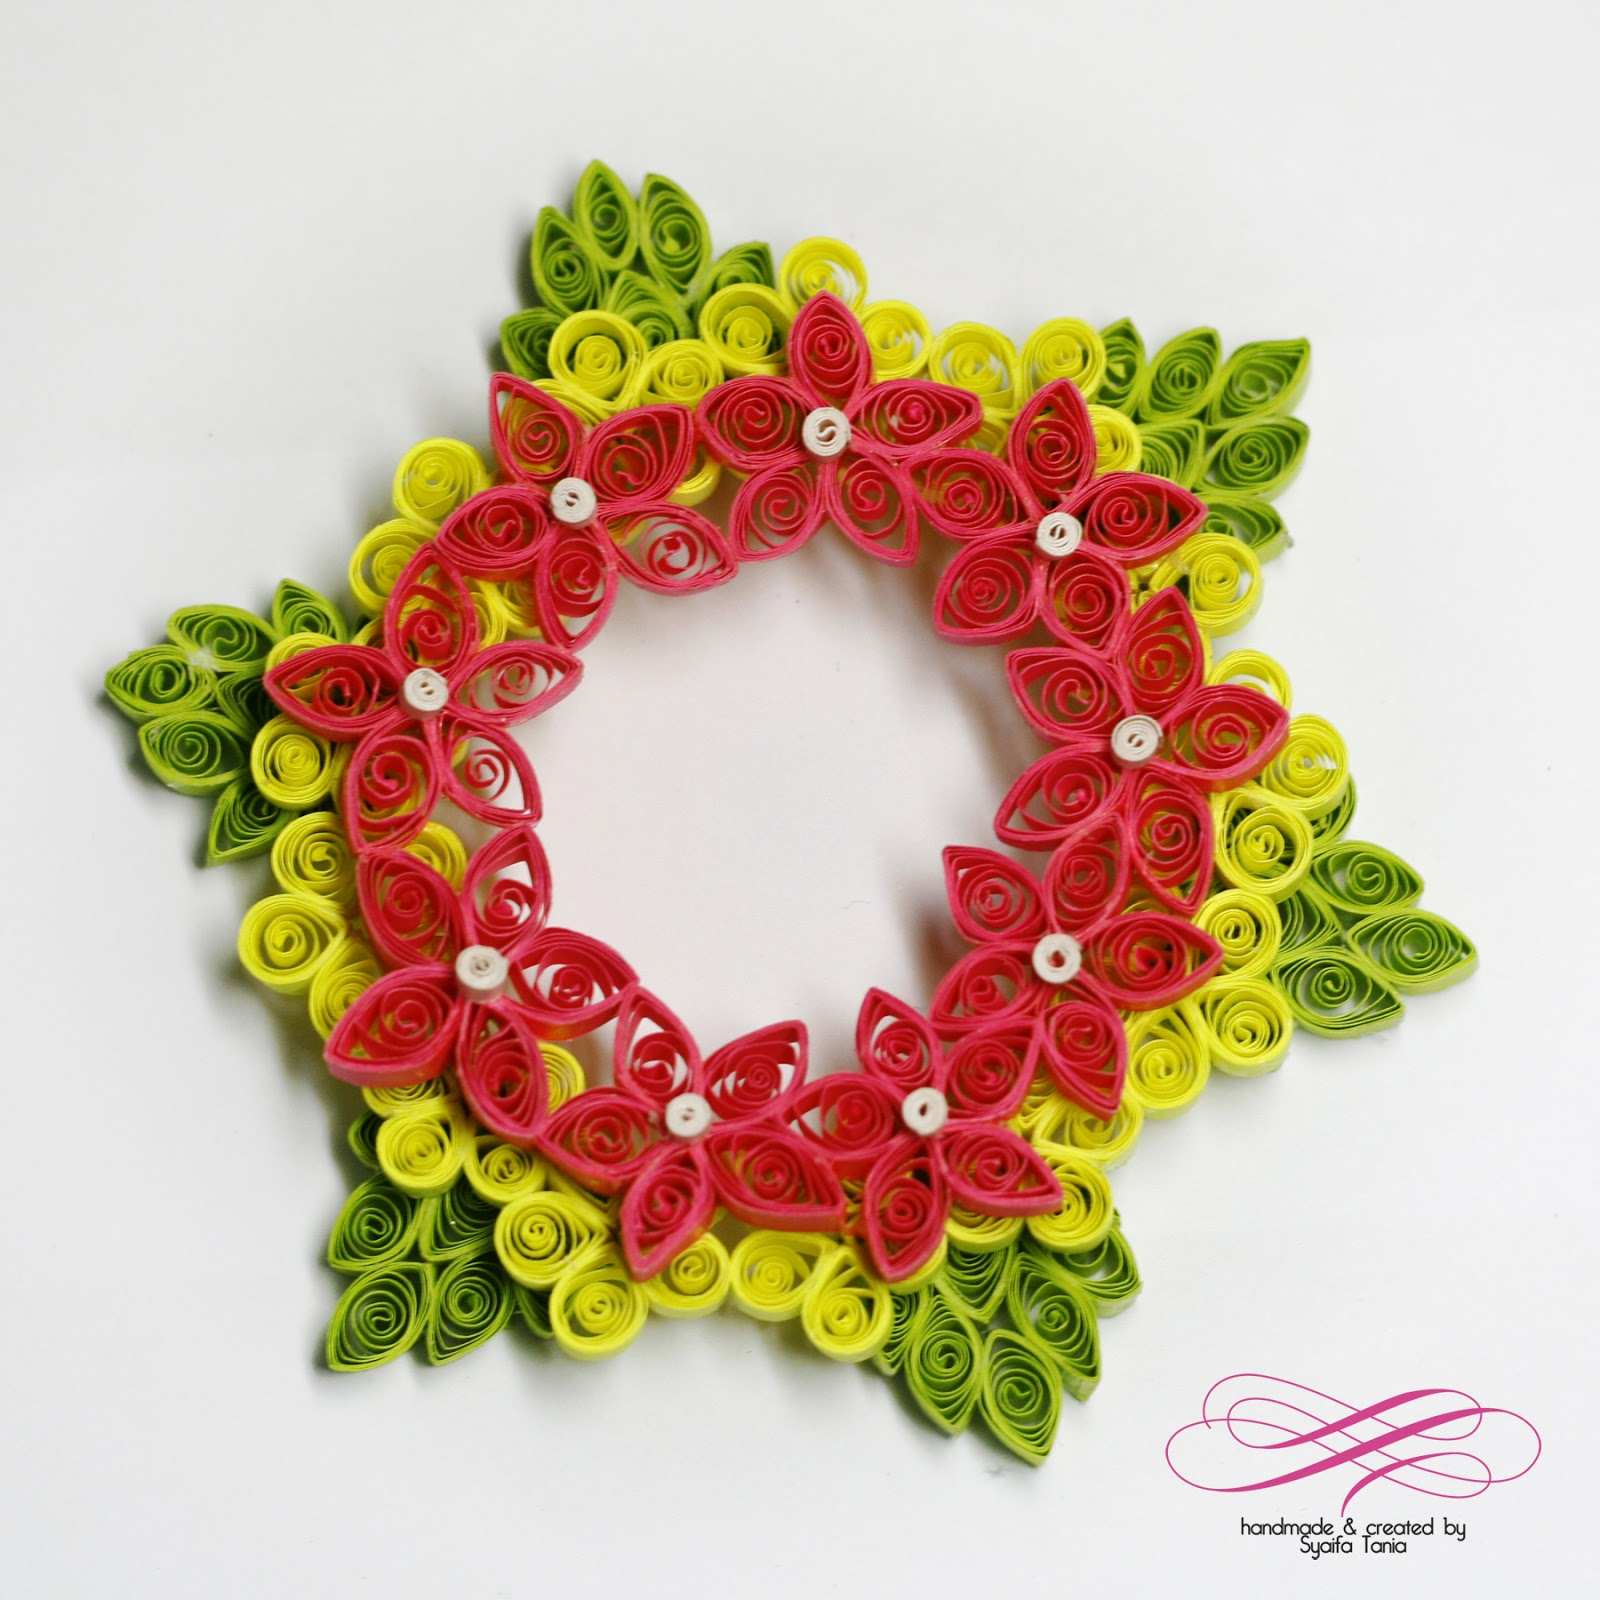 Where to Buy Paper Quilling Supplies